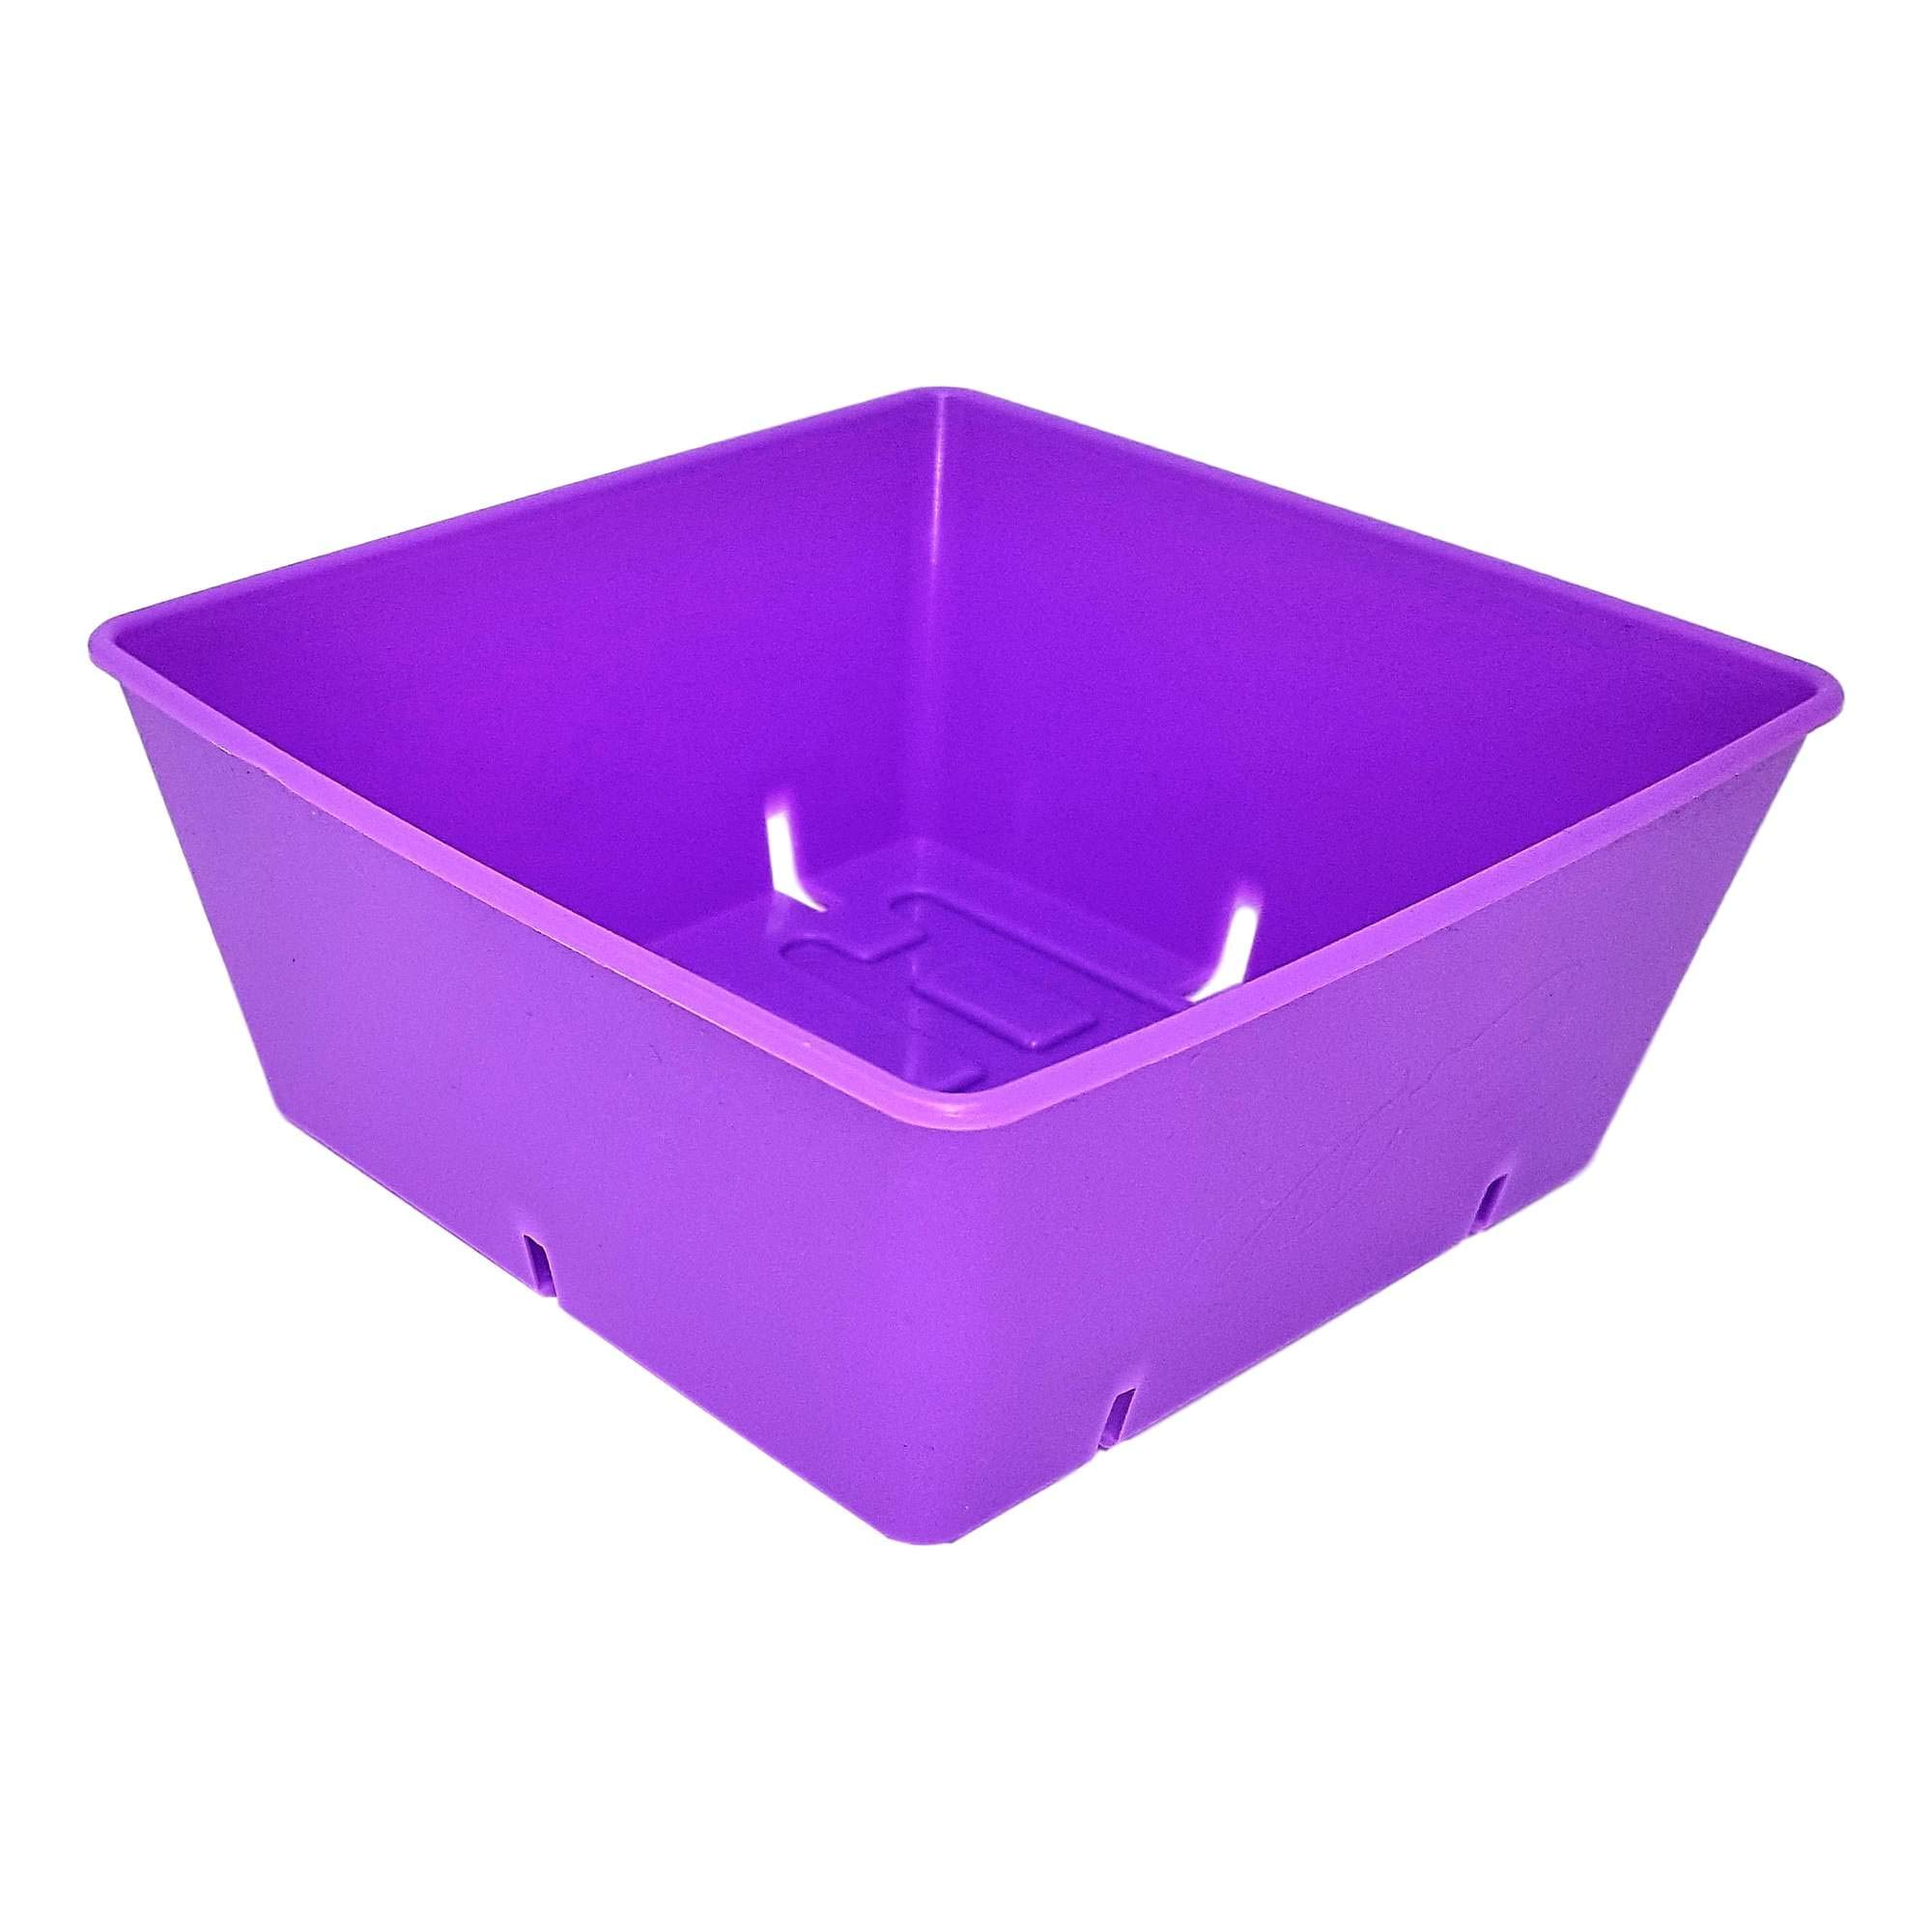 5x5 Seed Tray Purple - 80 Pack - Extra Strength 5 x 5 Inserts Grow Microgreens, Wheatgrass Seeds, Fodder 1020 System 801 Trays by Bootstrap Farmer